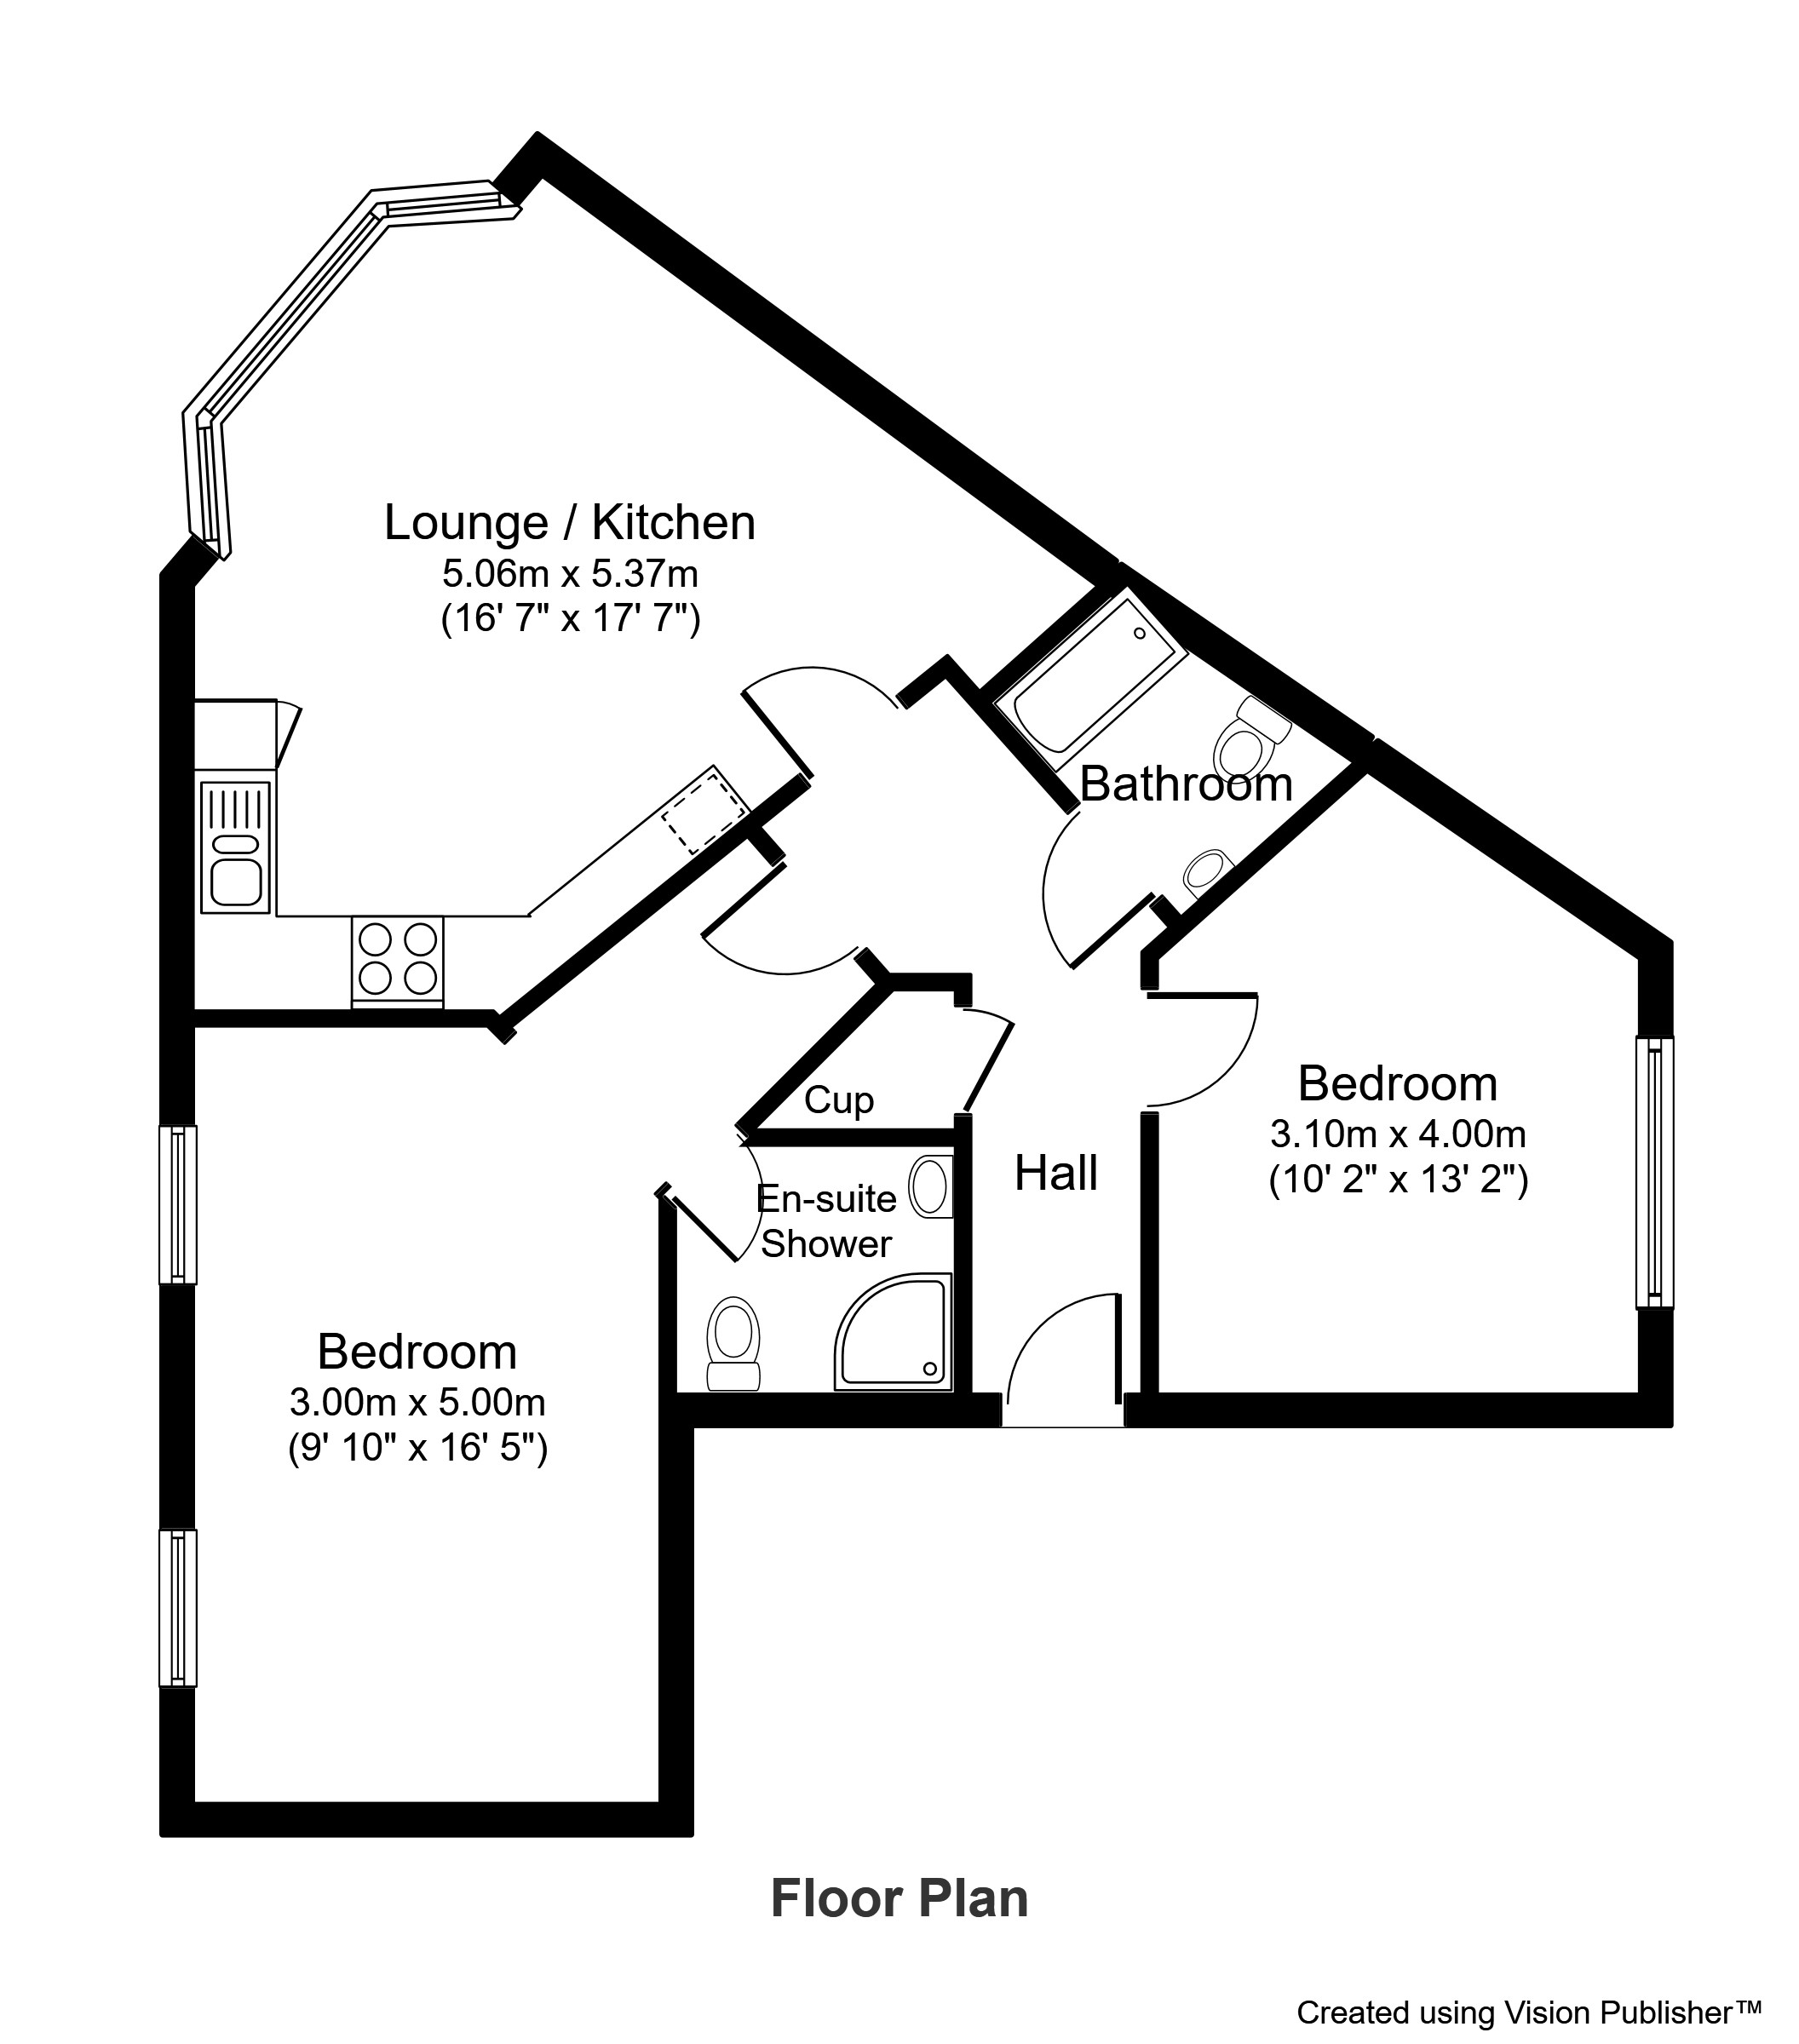 66 Derby Court Floor Plans (Auto Sized)